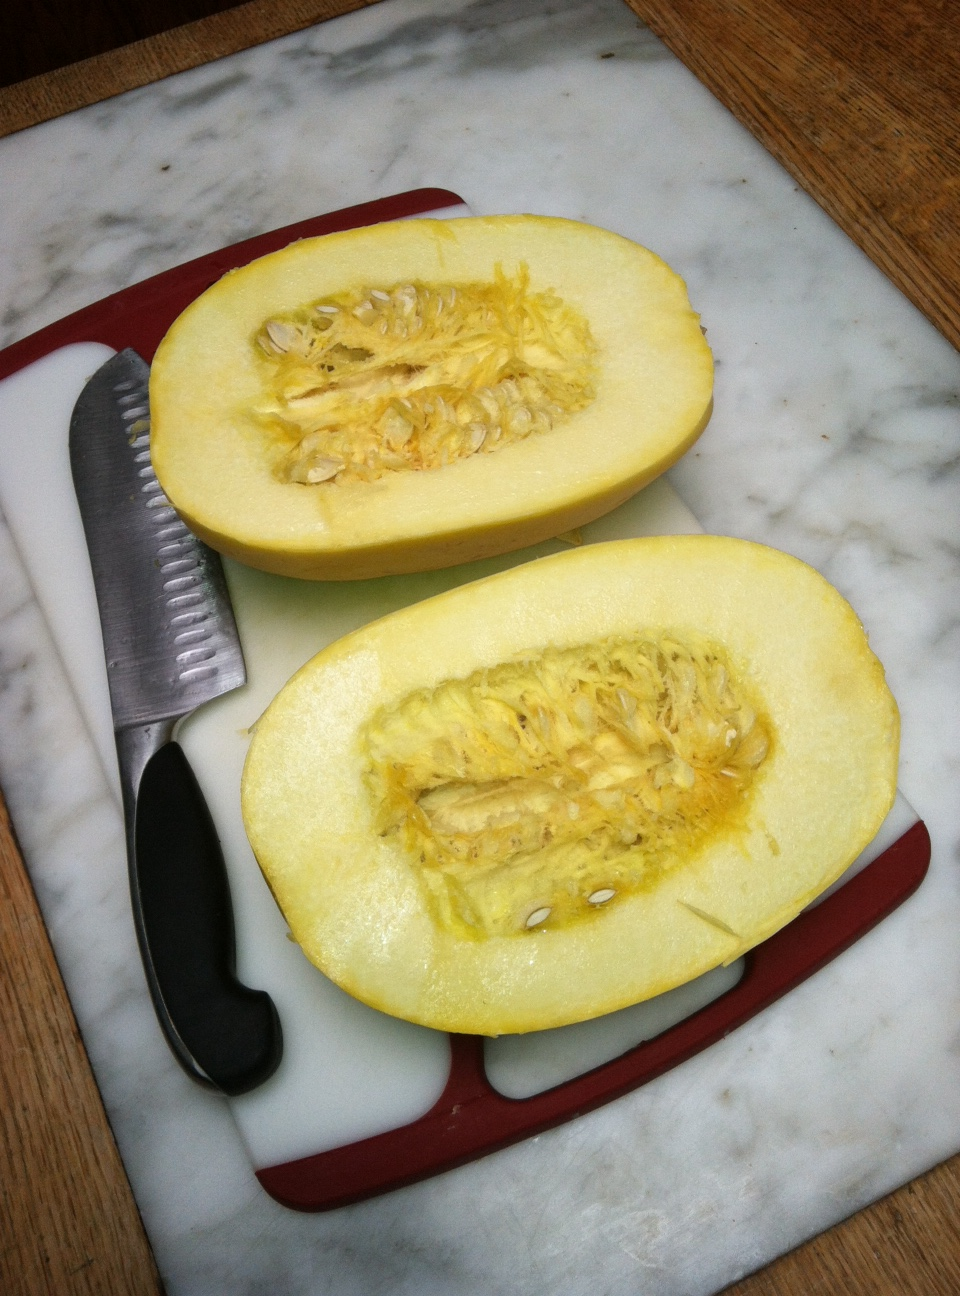 spaghetti squash recipes low carb delicious diabetes. Black Bedroom Furniture Sets. Home Design Ideas